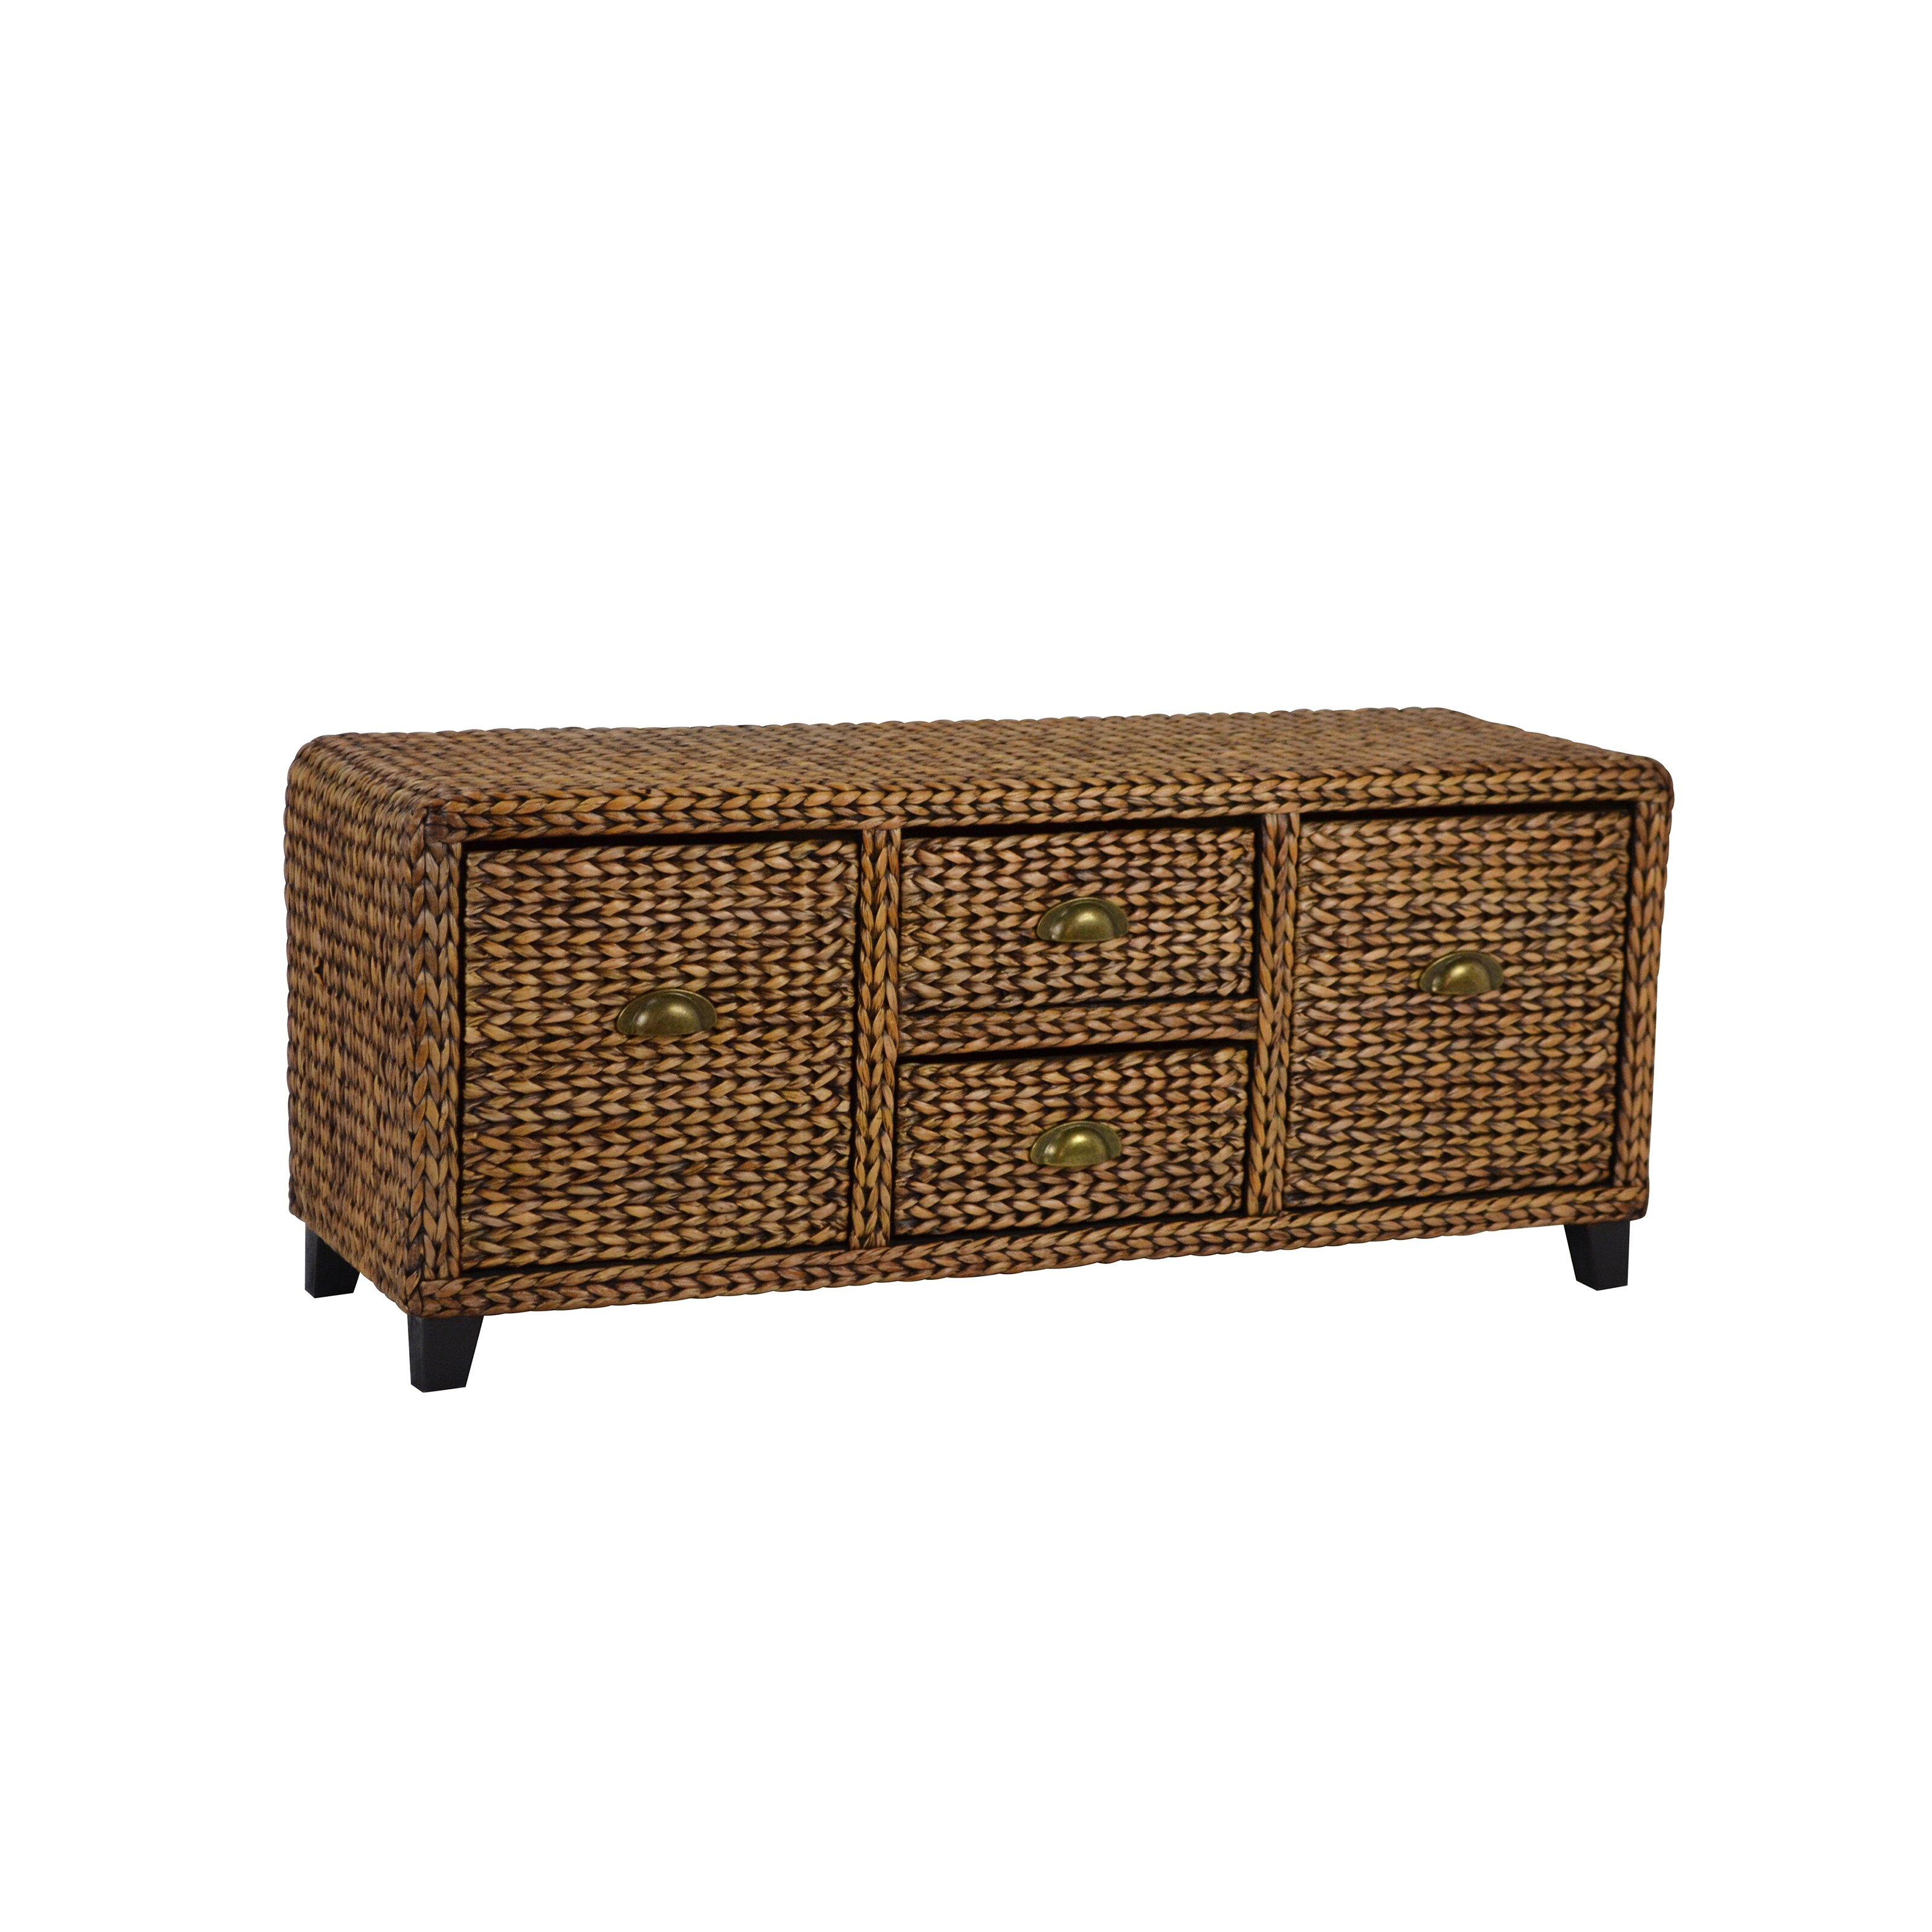 Gallerie decor bali breeze wood storage entryway bench reviews wayfair - Decorative stools and benches ...